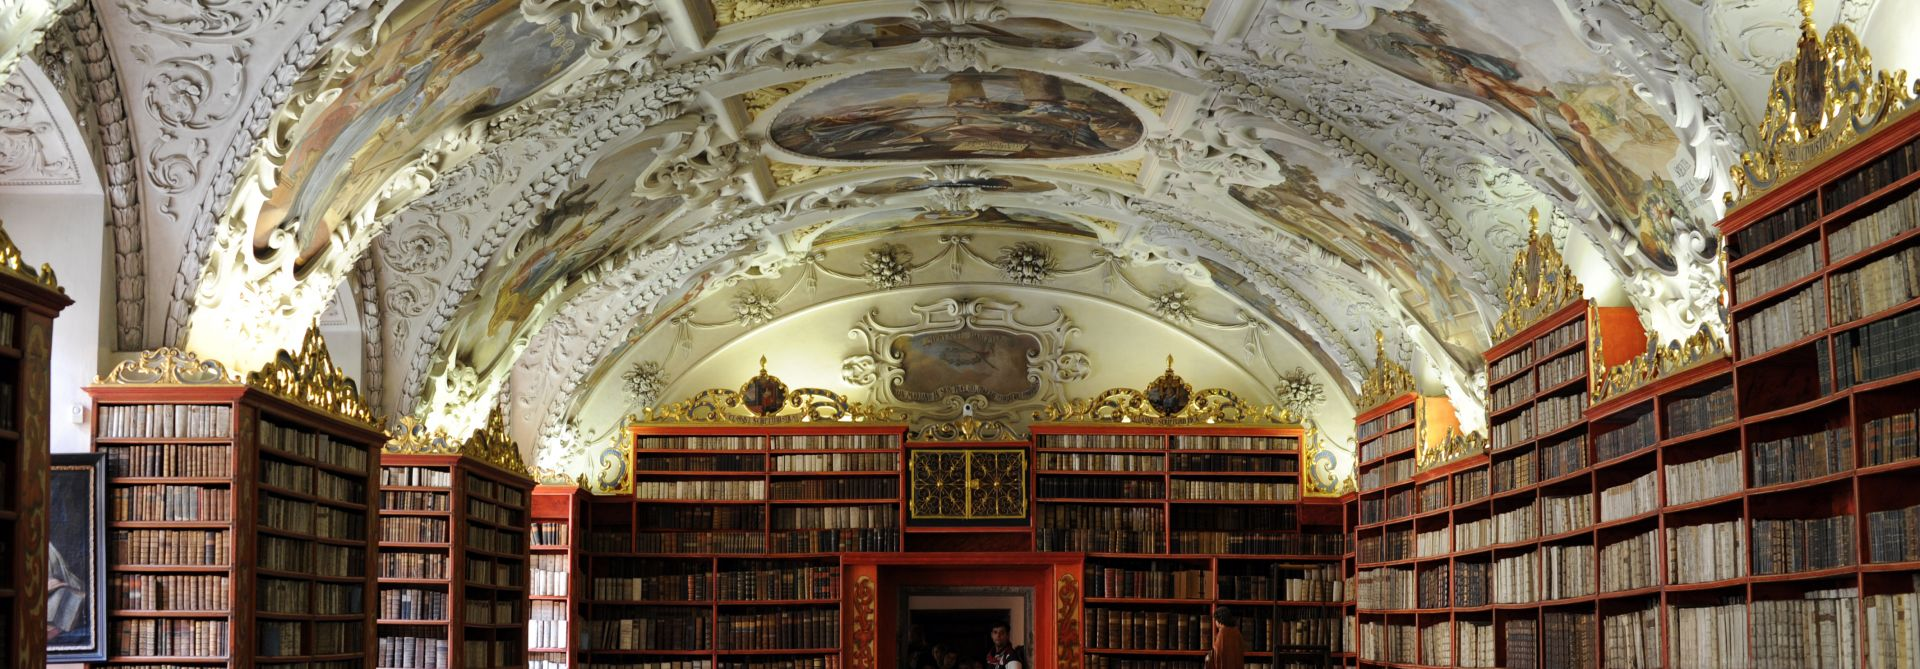 Strahov Library - Prague, Czech Republic